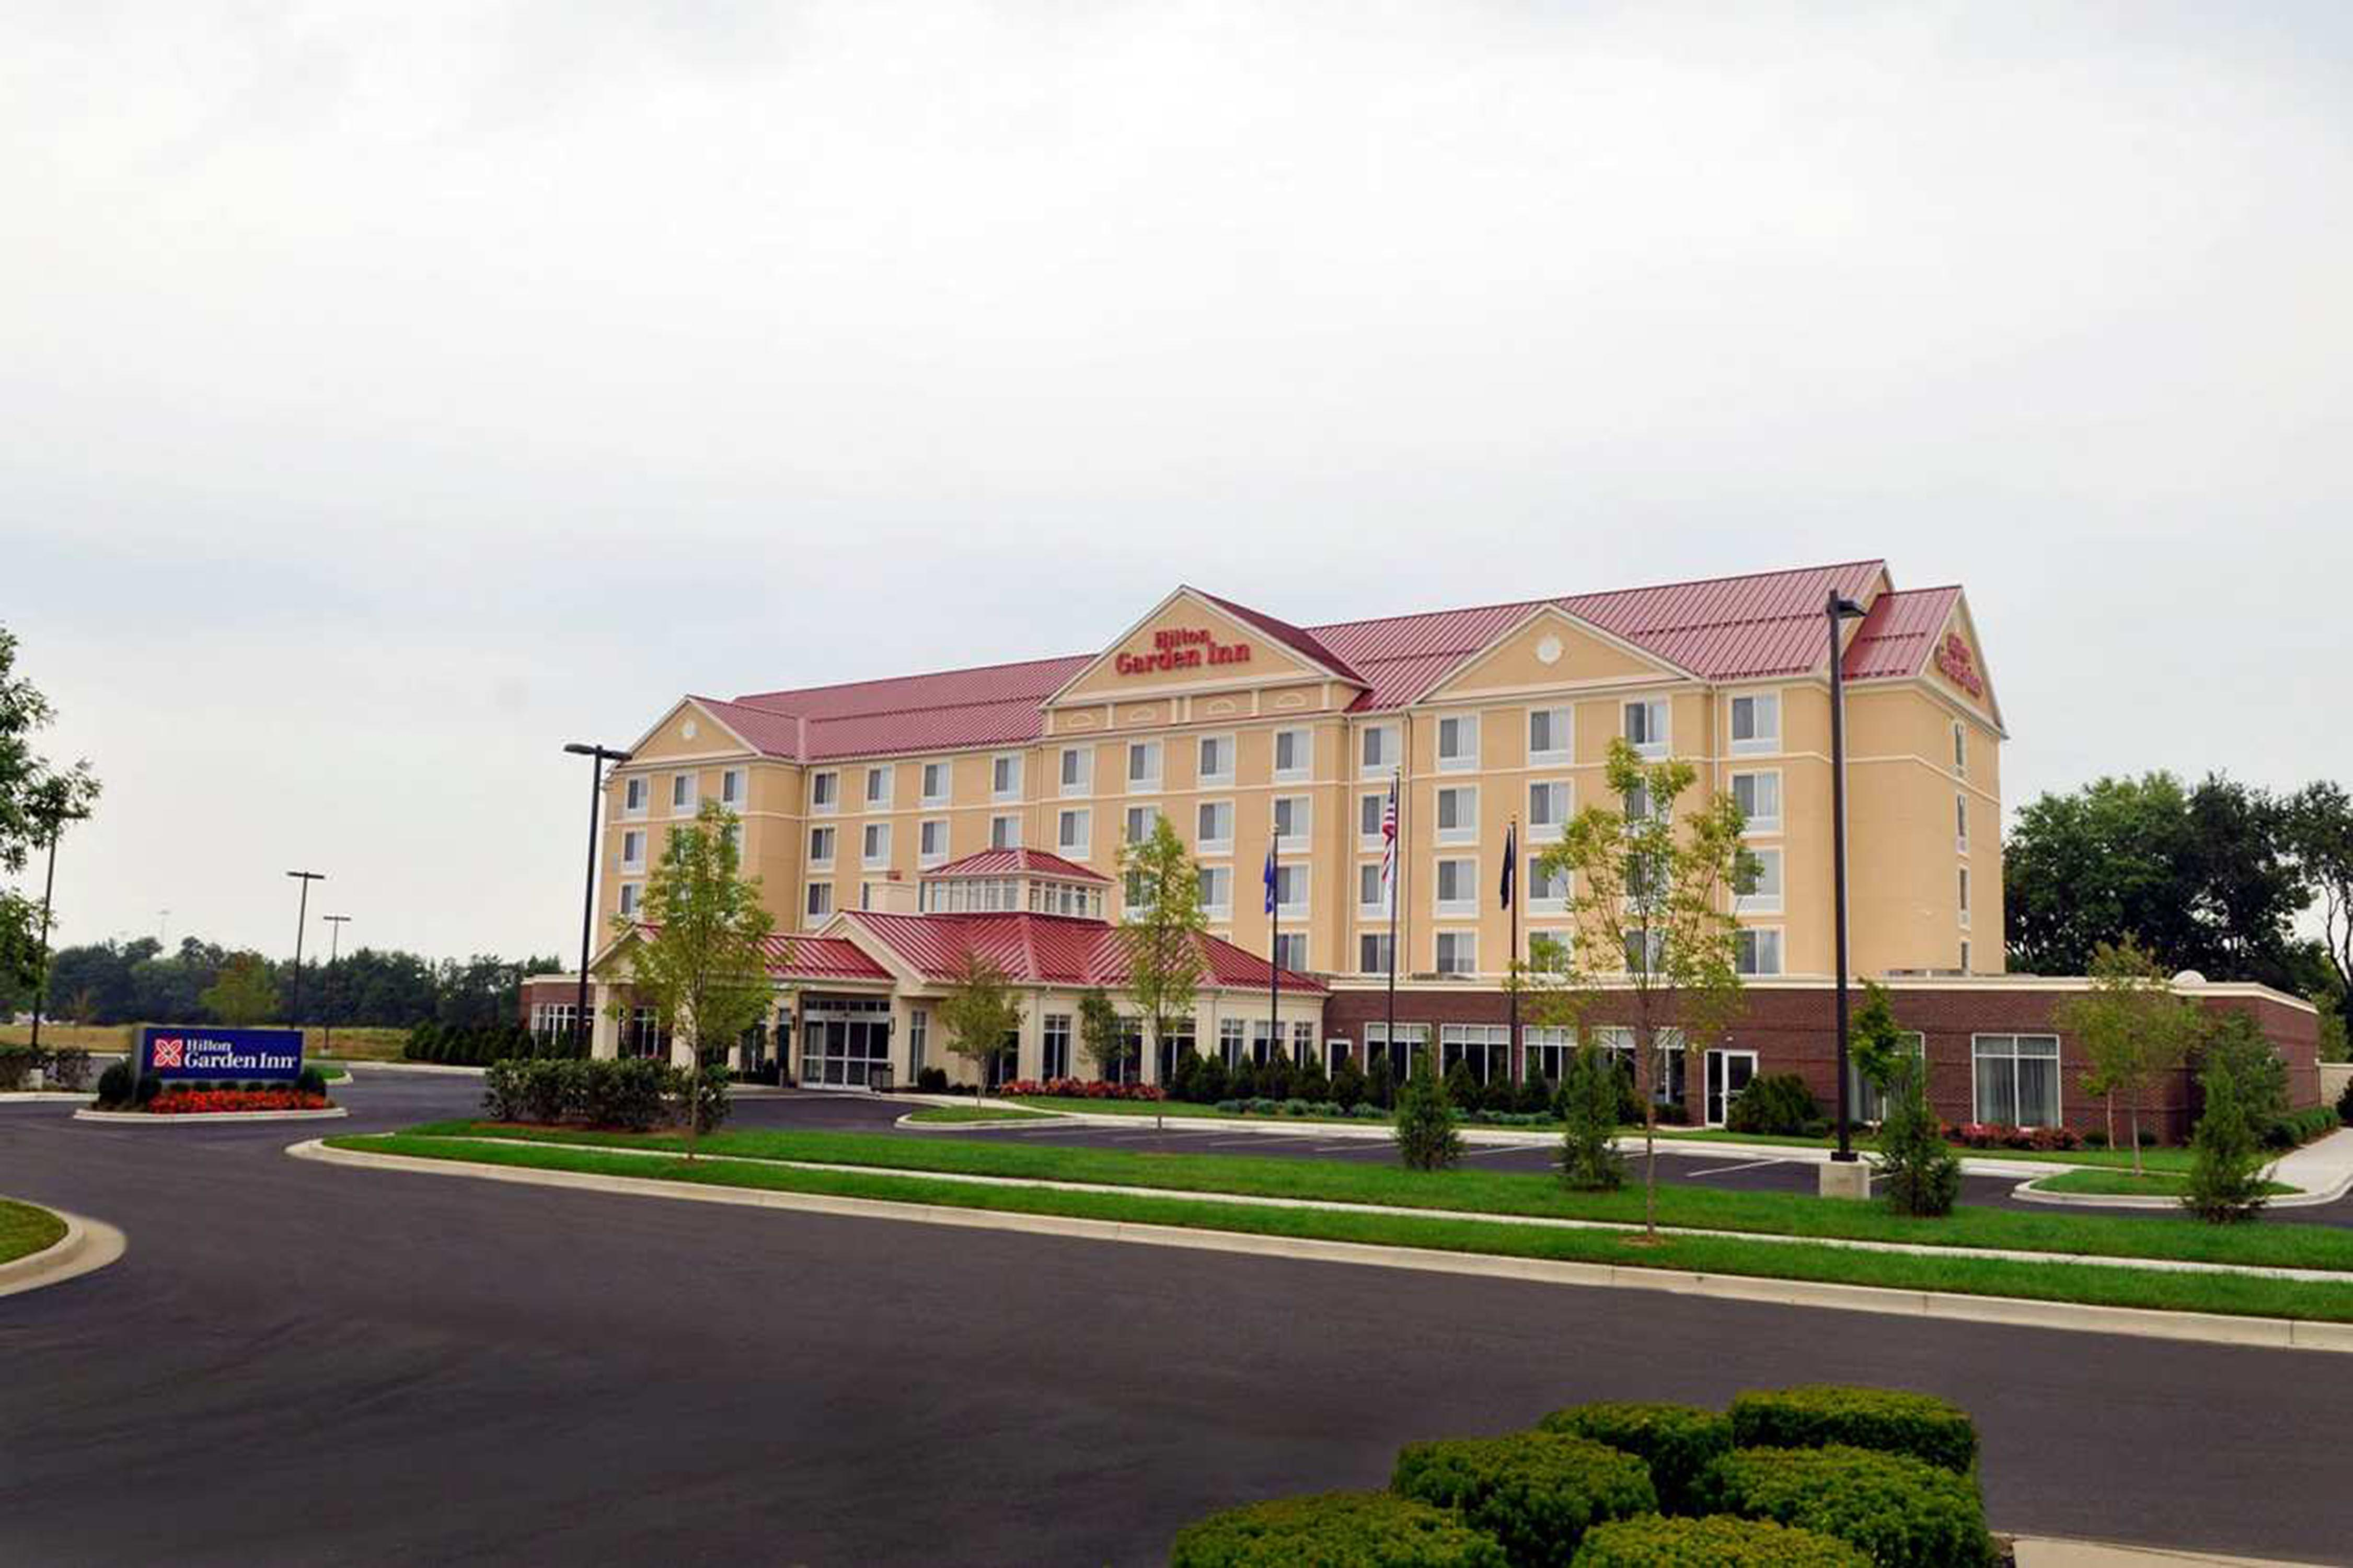 Hilton Garden Inn Louisville Northeast In Louisville, Ky. Bamboo Room Dividers. Casual Living Rooms. High School Graduation Decoration Ideas. Decorative Spotlights Outdoor. Cheap Wedding Decorations Online. Lantern Decorations. Outdoor Sun Decor. Great Room Ceiling Fans